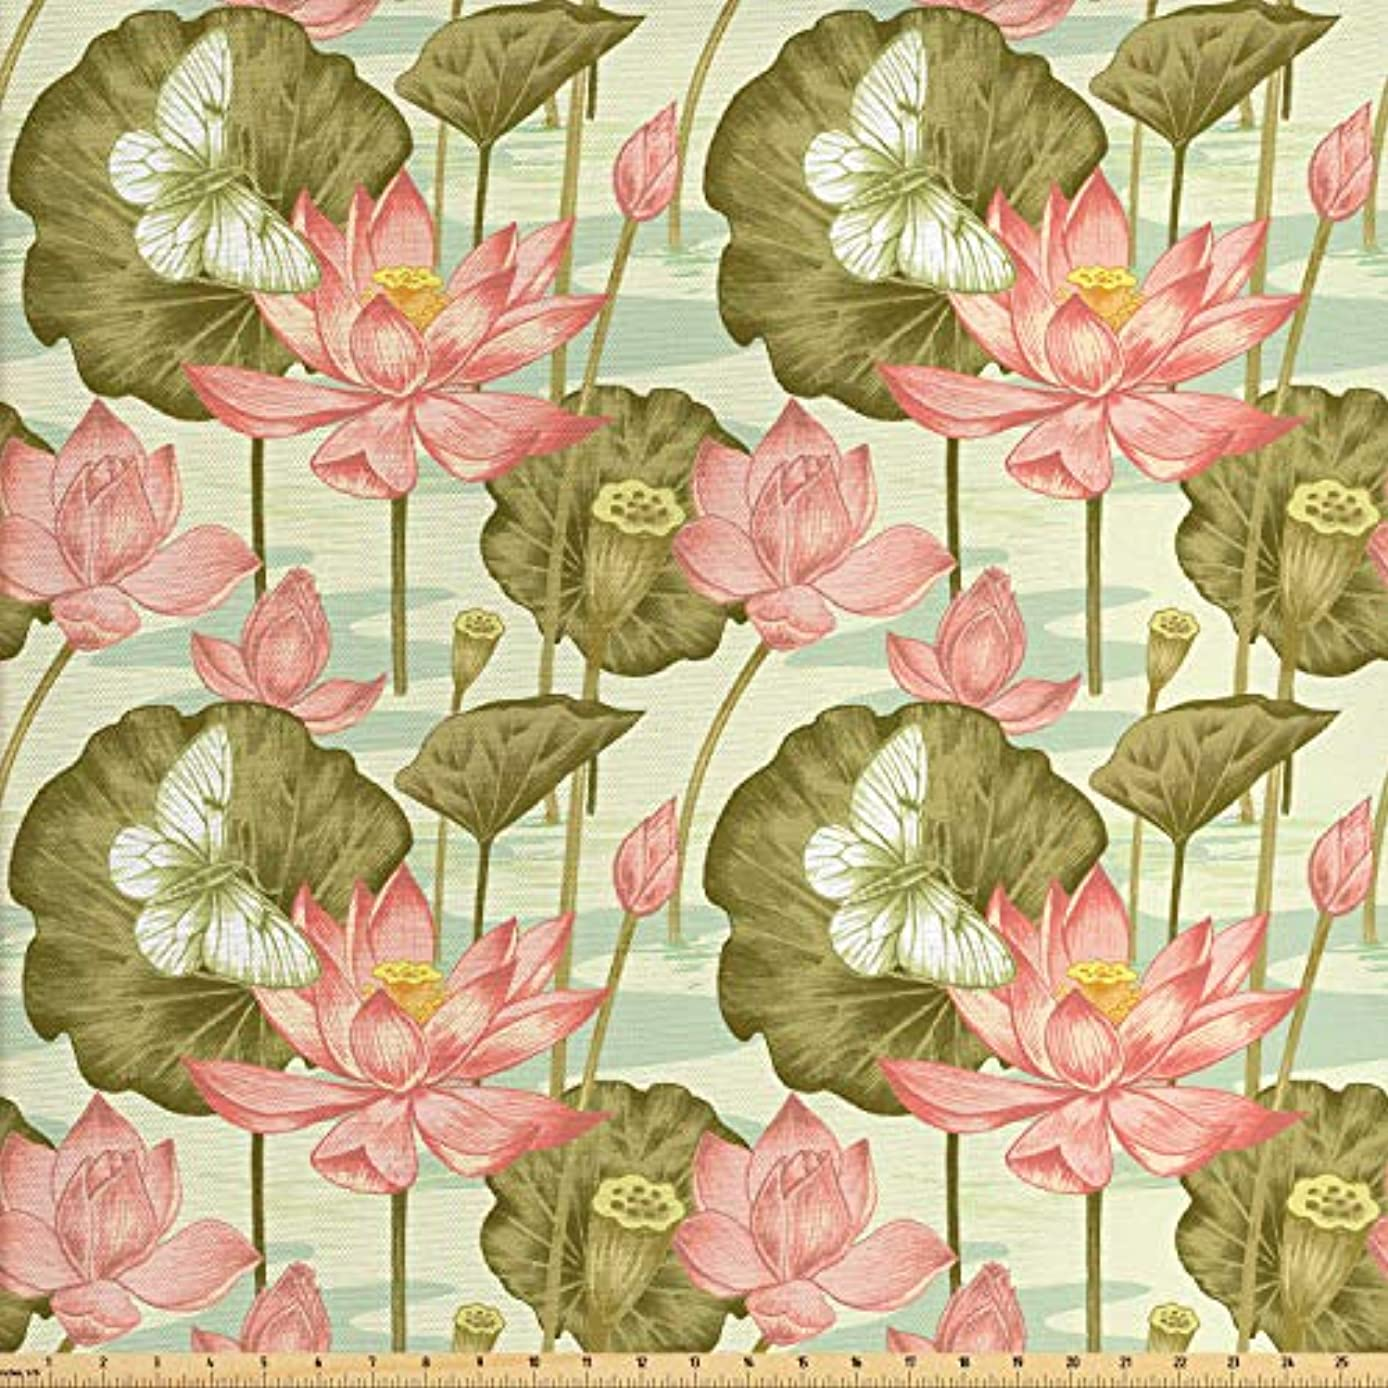 Lunarable Japanese Fabric by The Yard, Exotic Vintage Lotus Flower Buds Stems in Pond Flying Butterfly Oriental Style, Decorative Fabric for Upholstery and Home Accents, 3 Yards, Multicolor